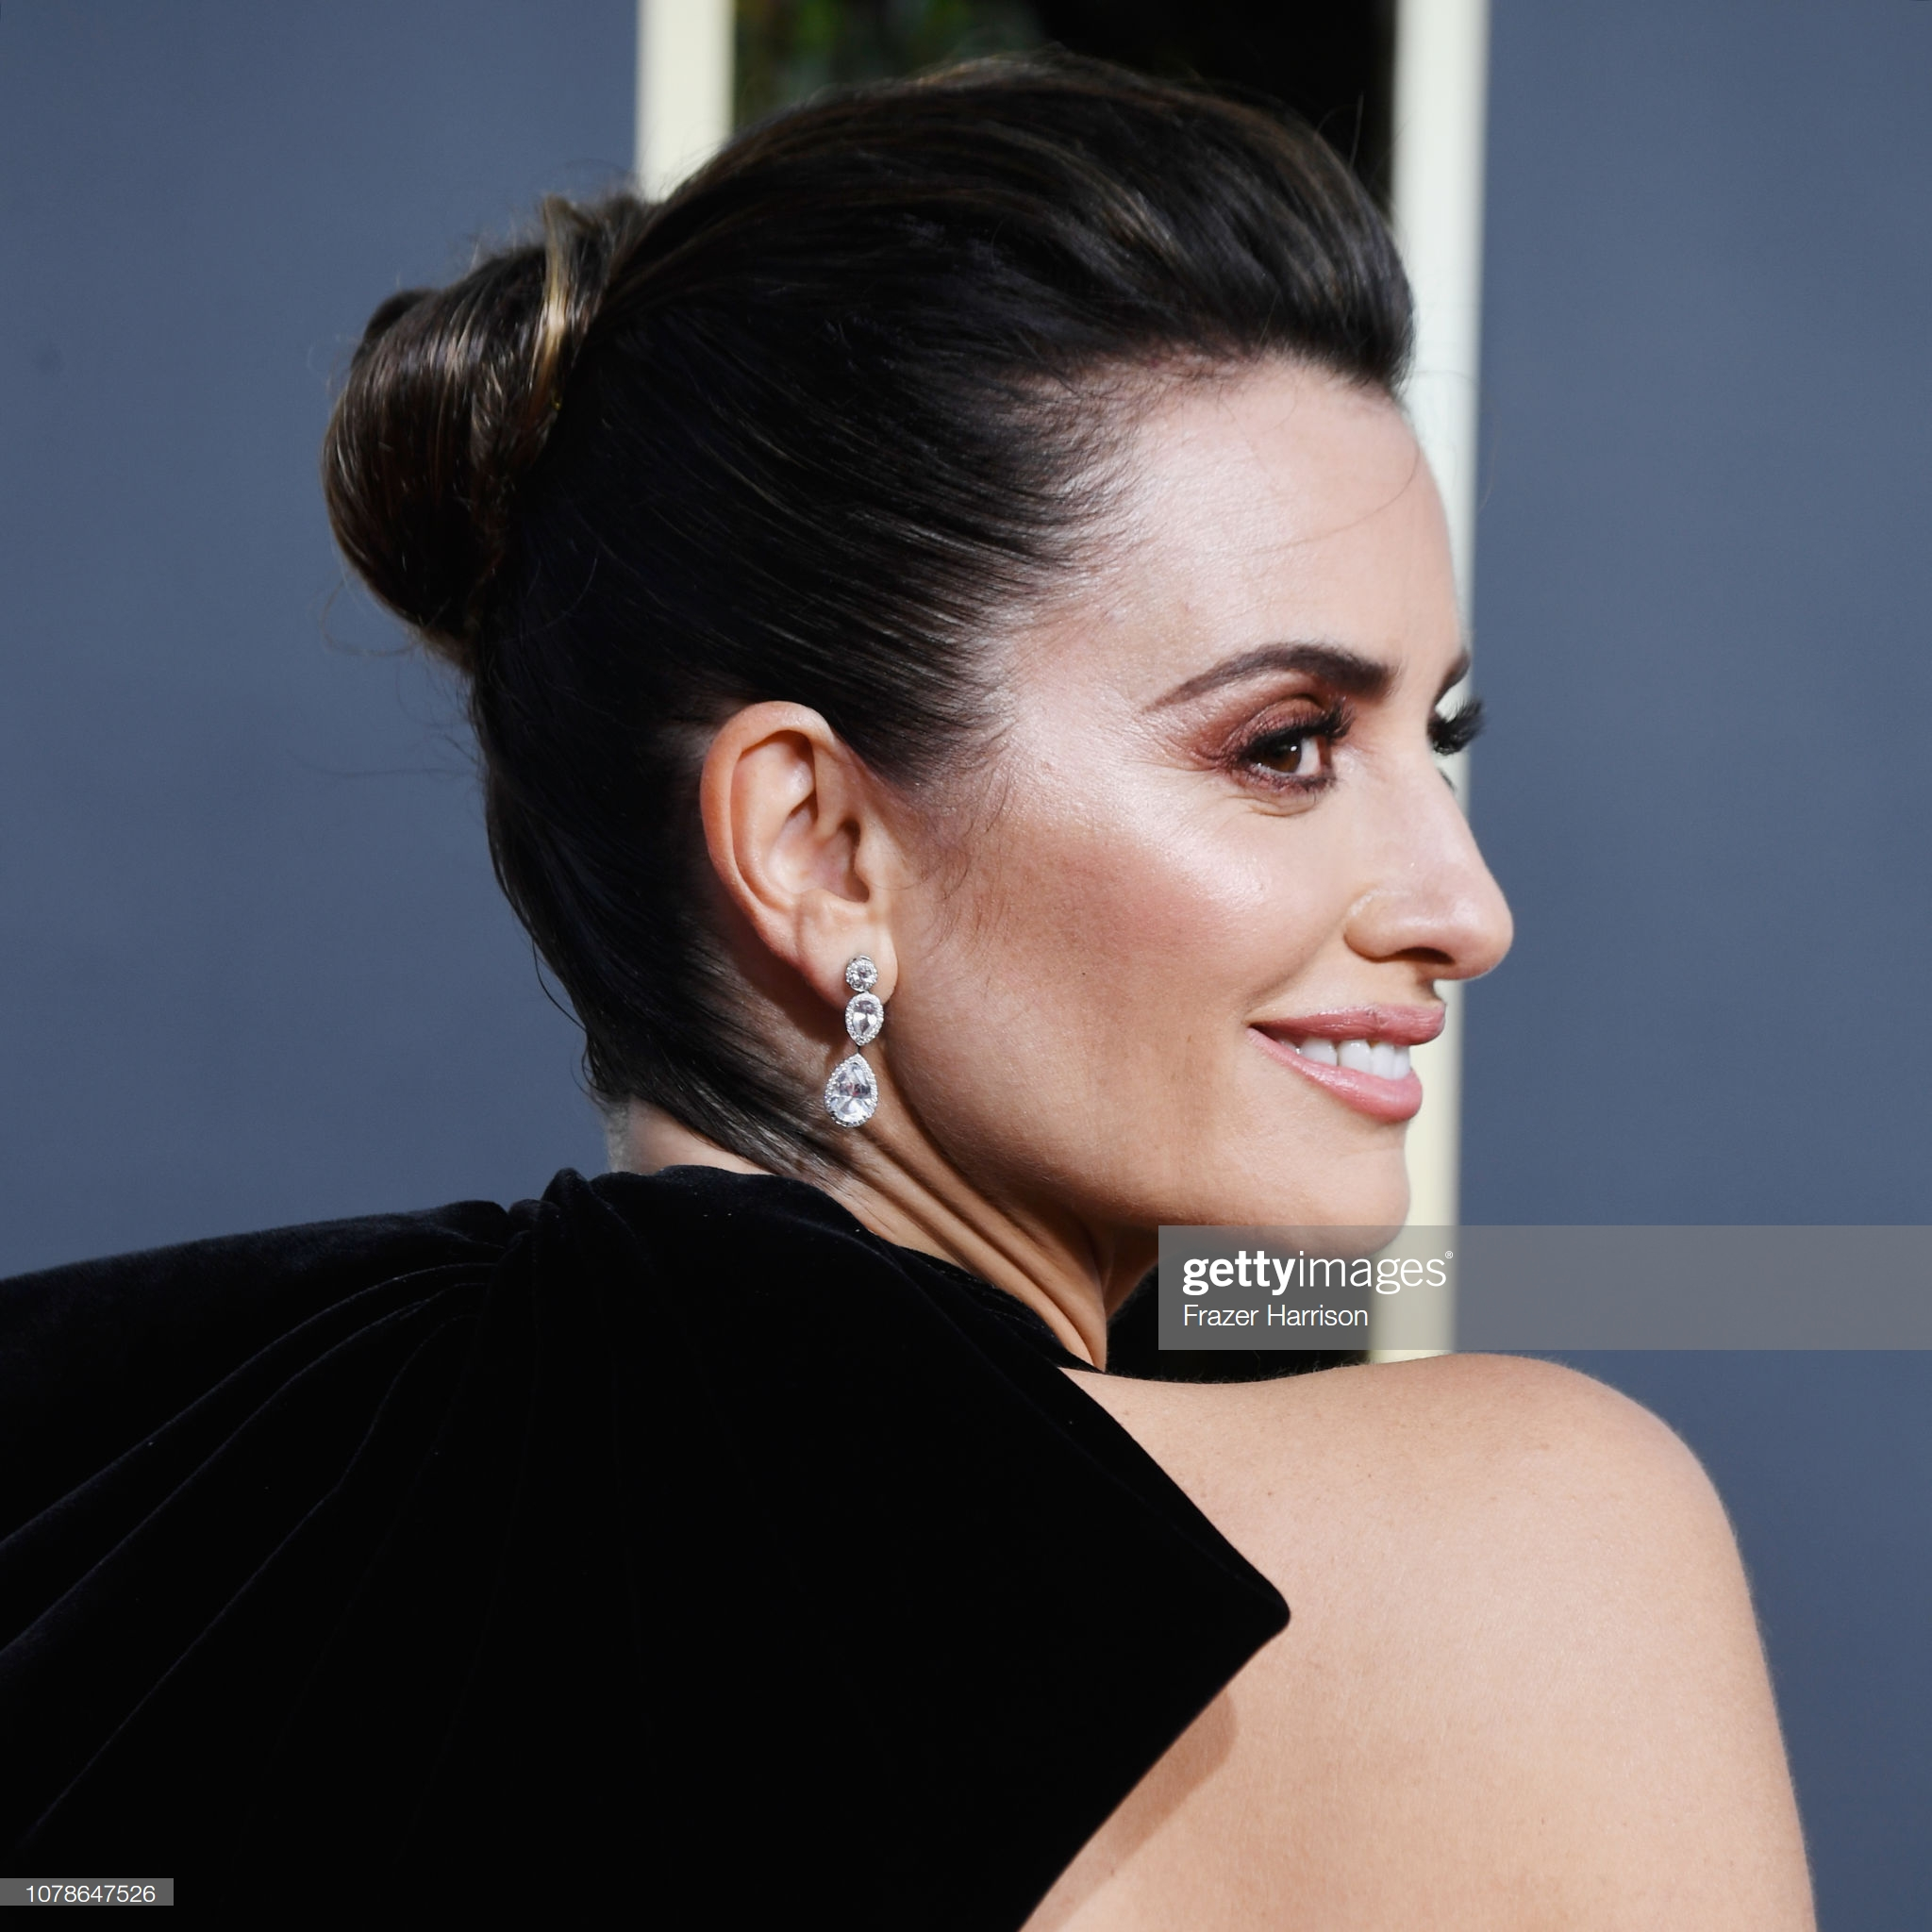 gettyimages-1078647526-2048x2048.jpg